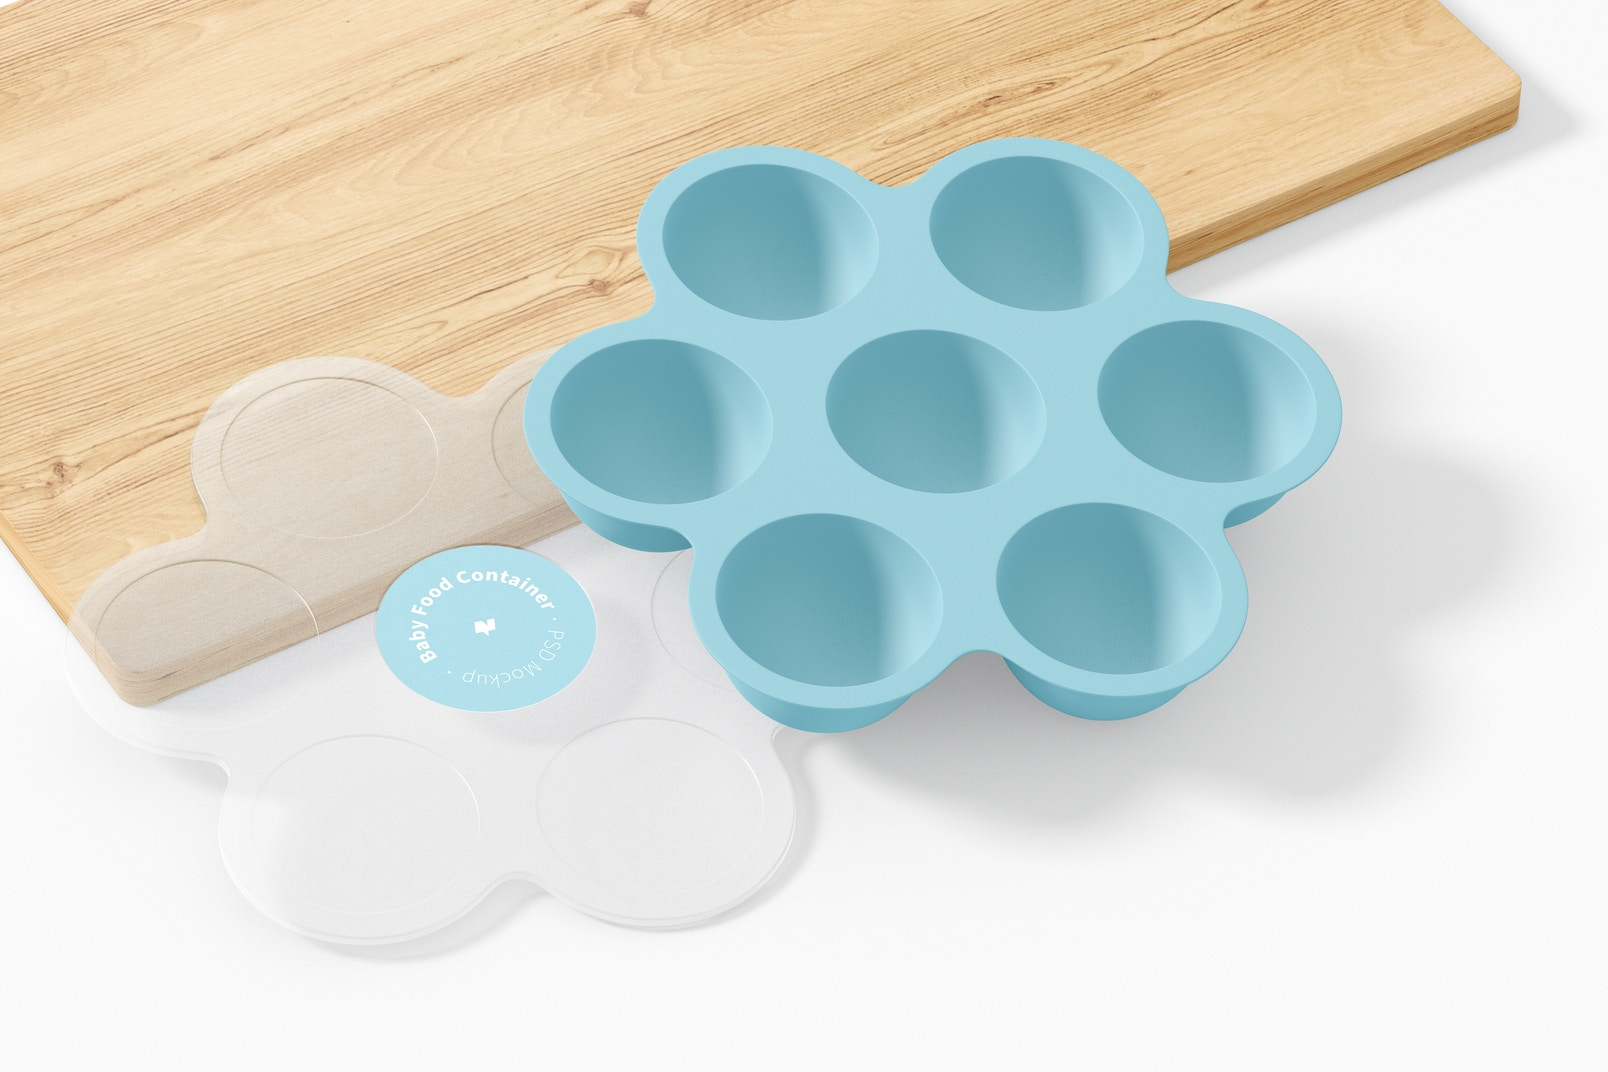 Baby Food Container Mockup, Opened